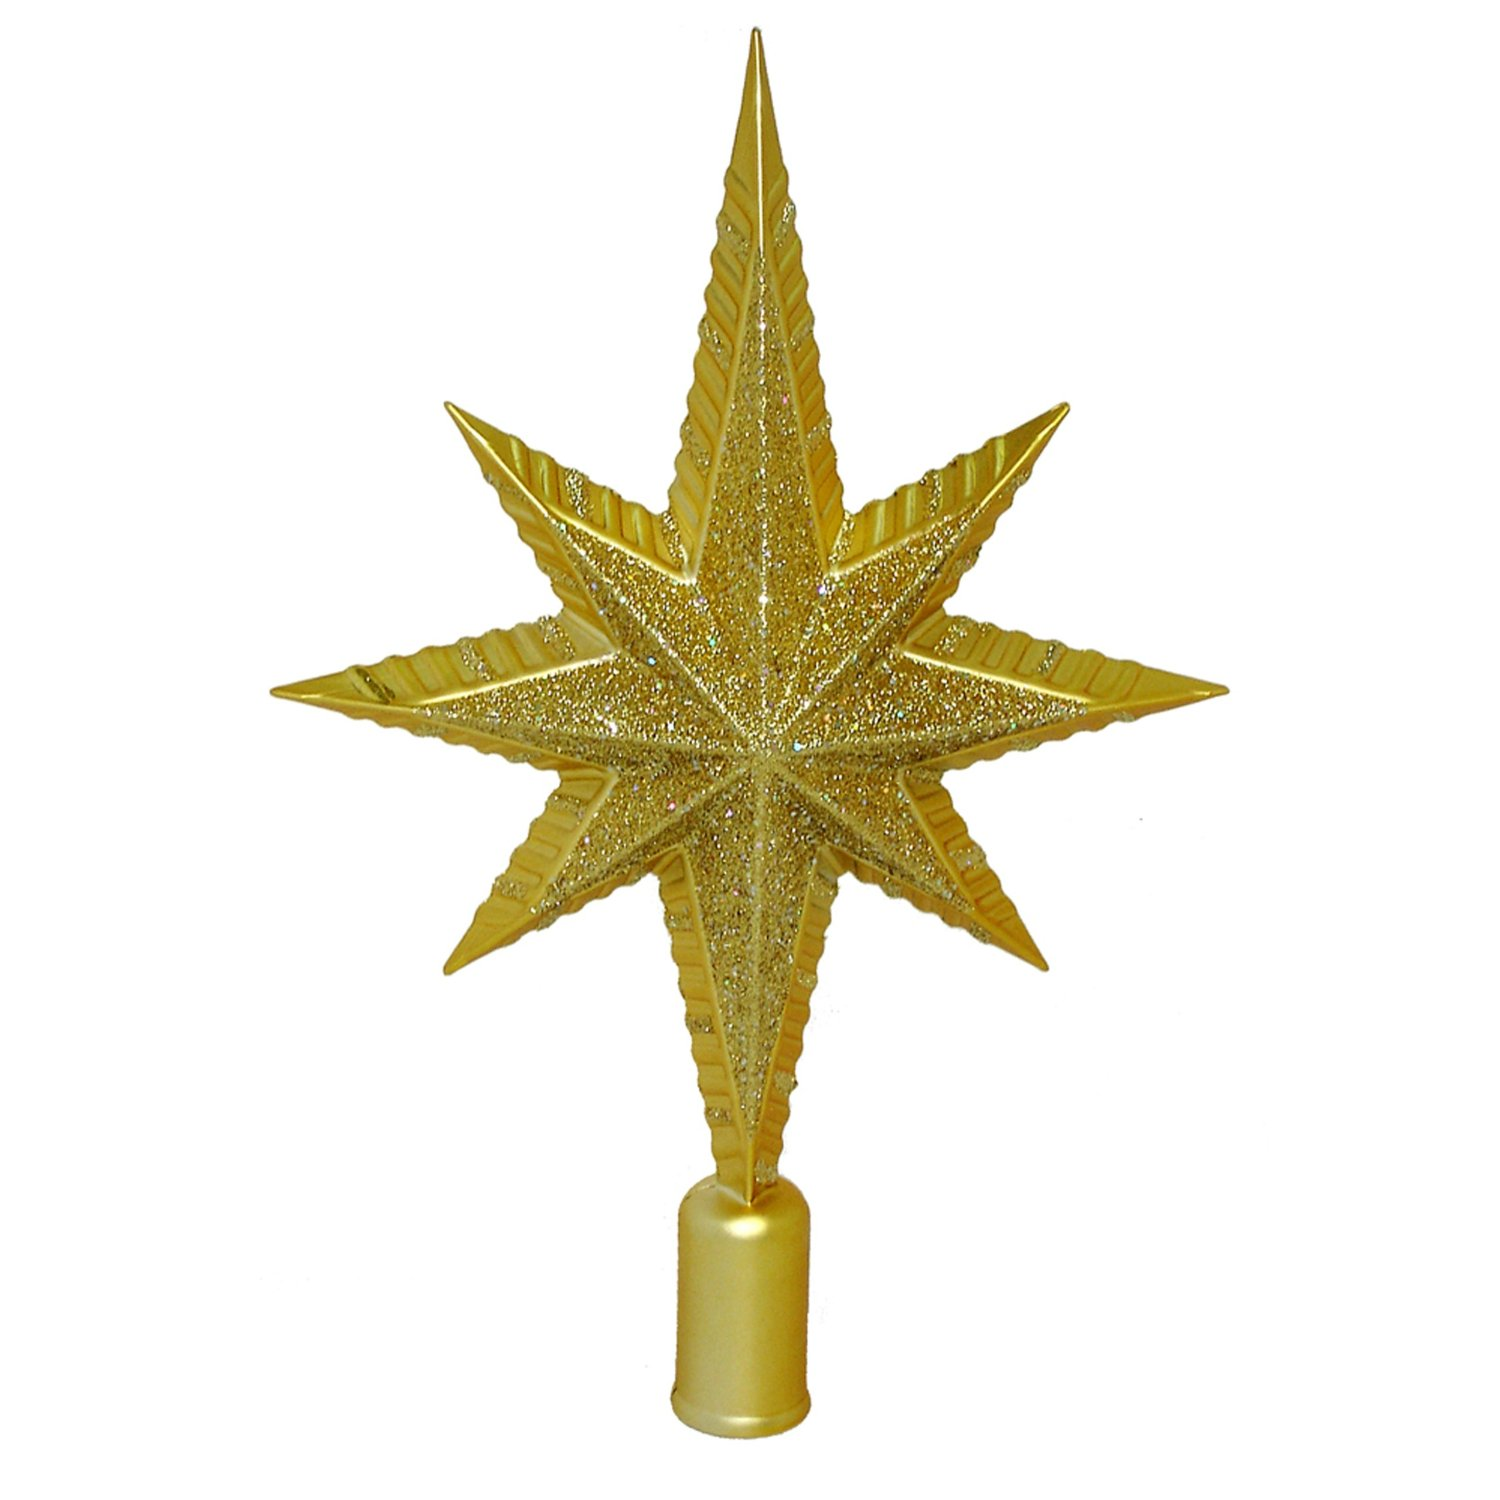 Barcana 12-Inch Shatterproof Gold Northern Star Christmas Tree Topper